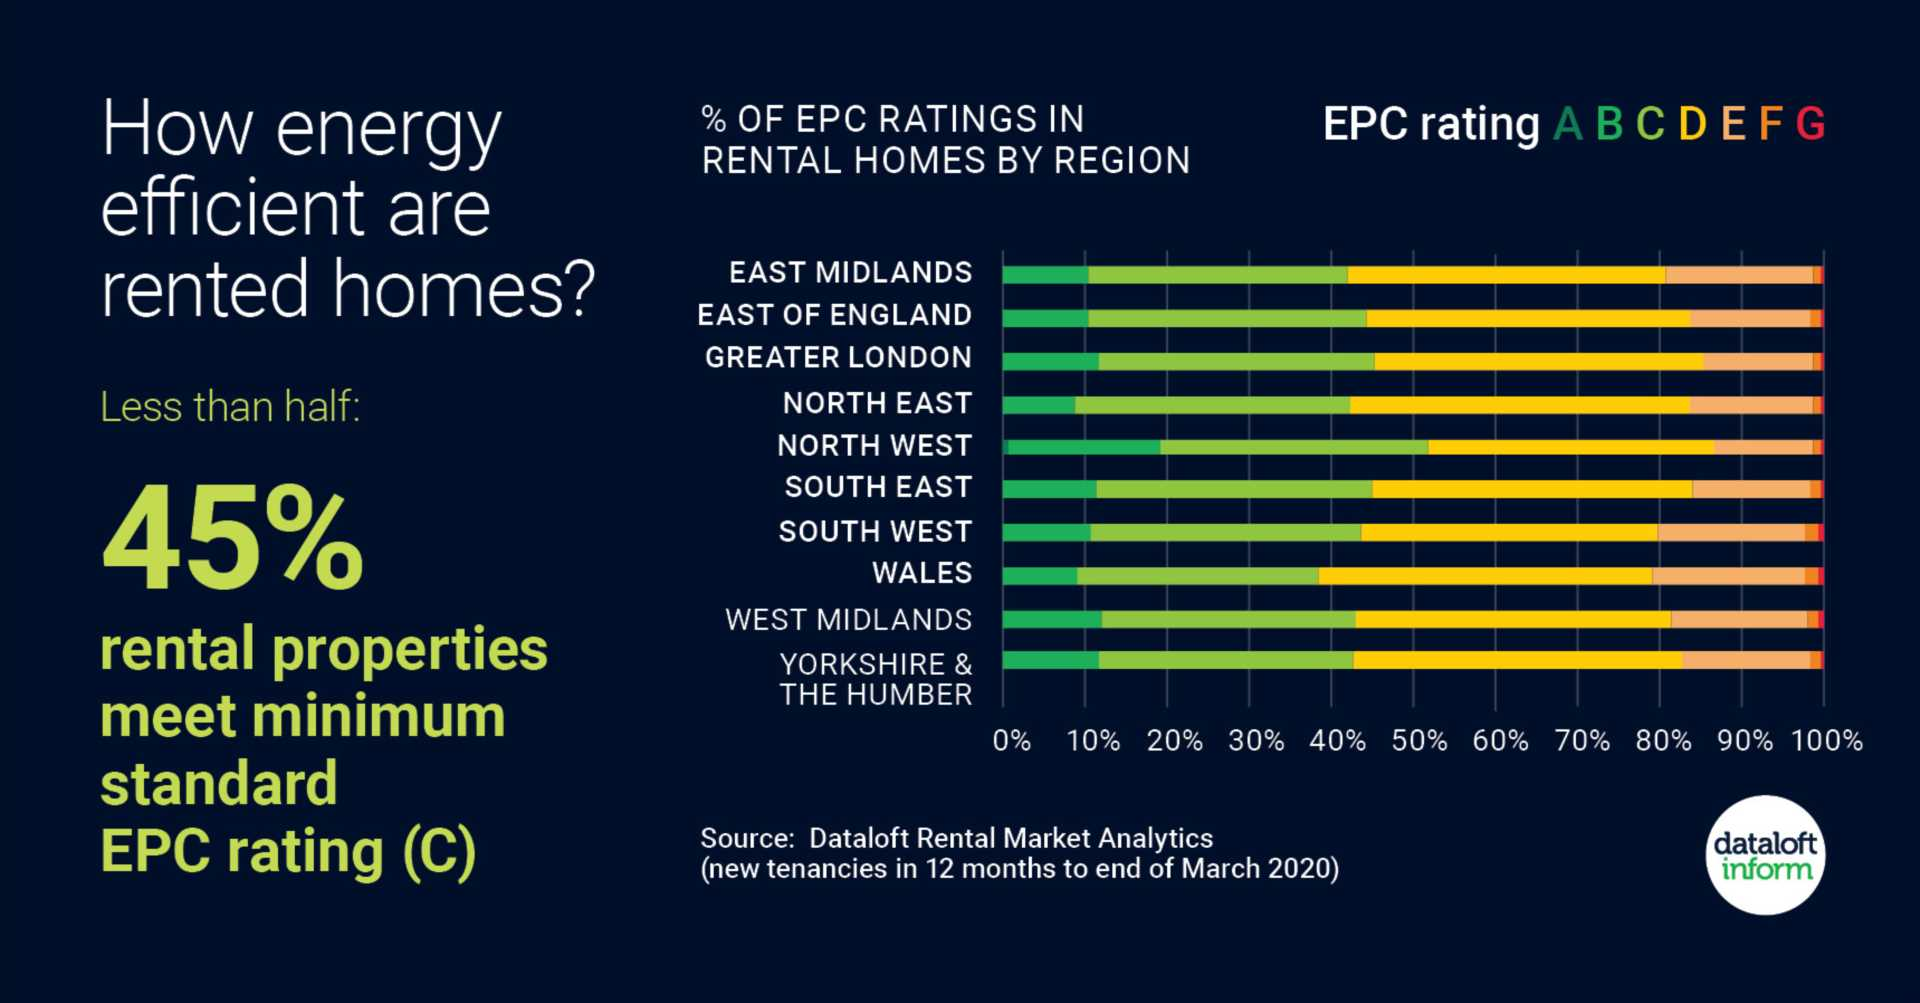 How energy efficient are rented homes?